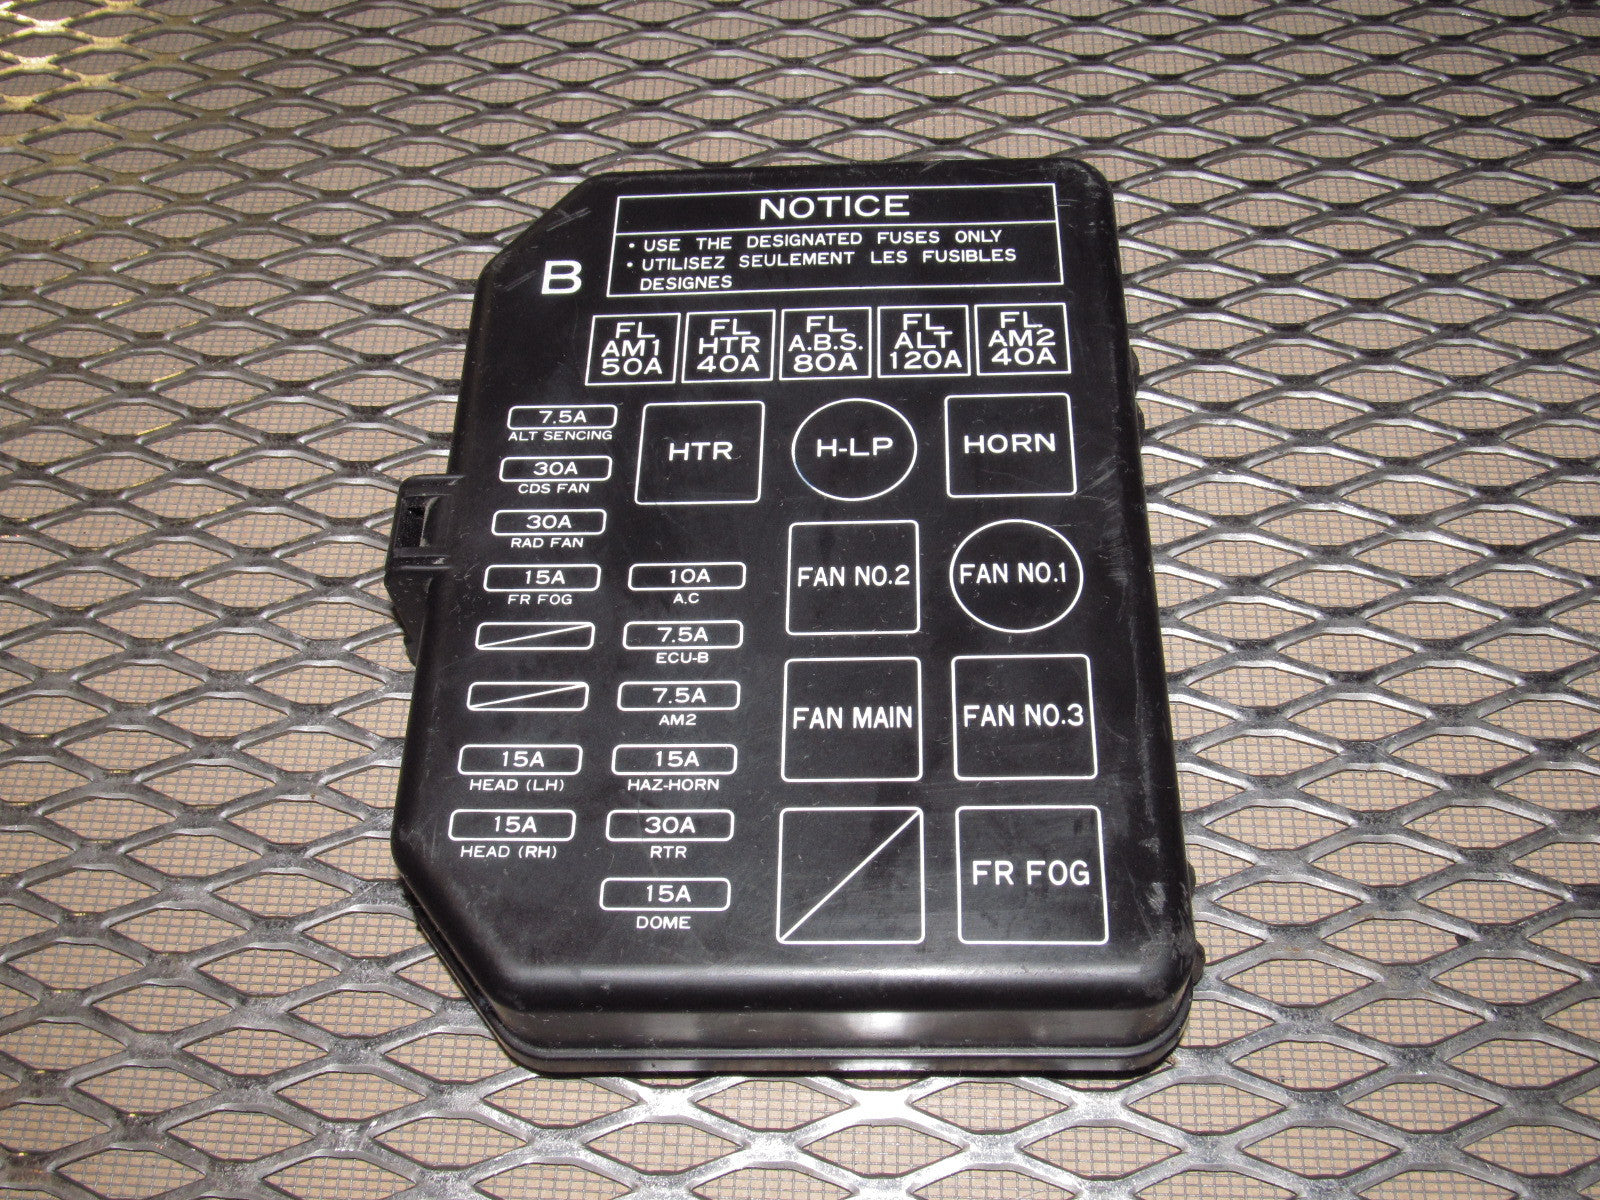 1986 Toyota Mr2 Fuse Box Numbers Reinvent Your Wiring Diagram 1991 Pickup 91 92 93 94 95 Oem Hood Cover Autopartone Com Rh Camry Location